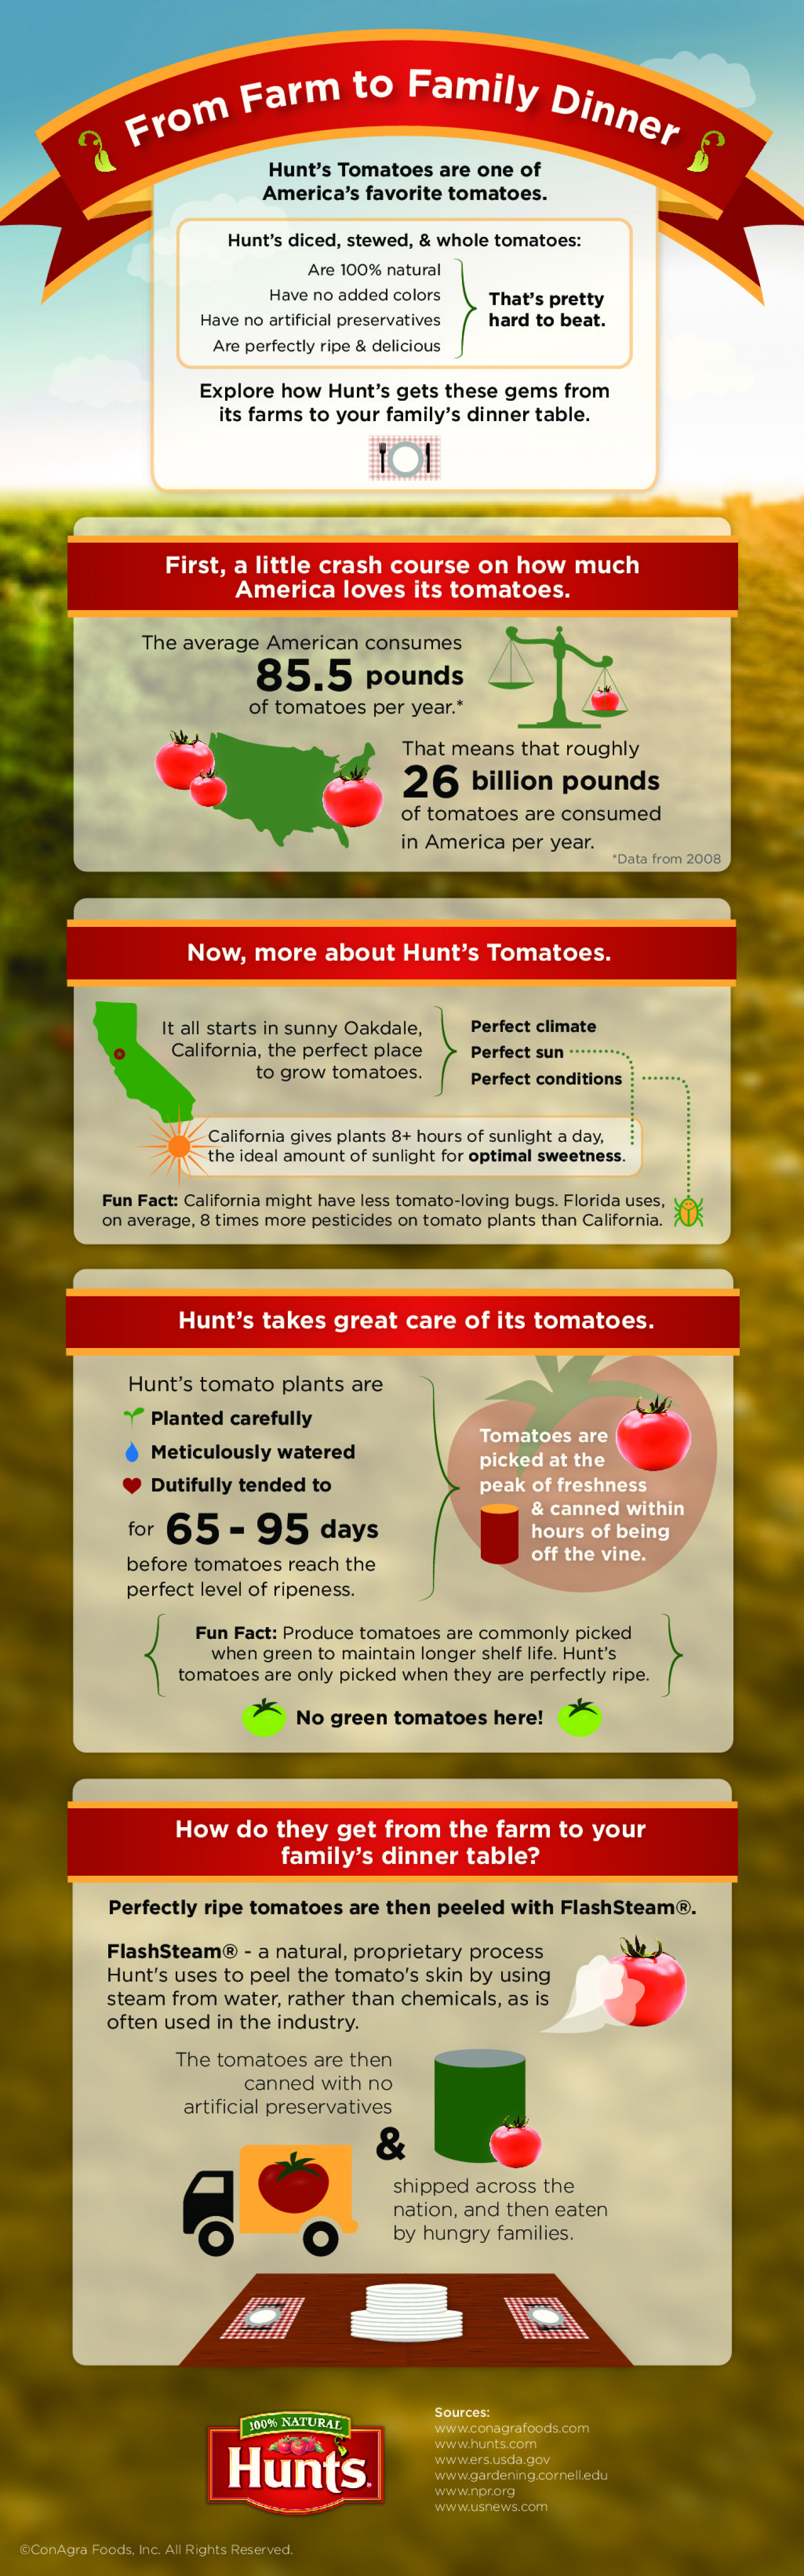 From Farm to Family Dinner Infographic